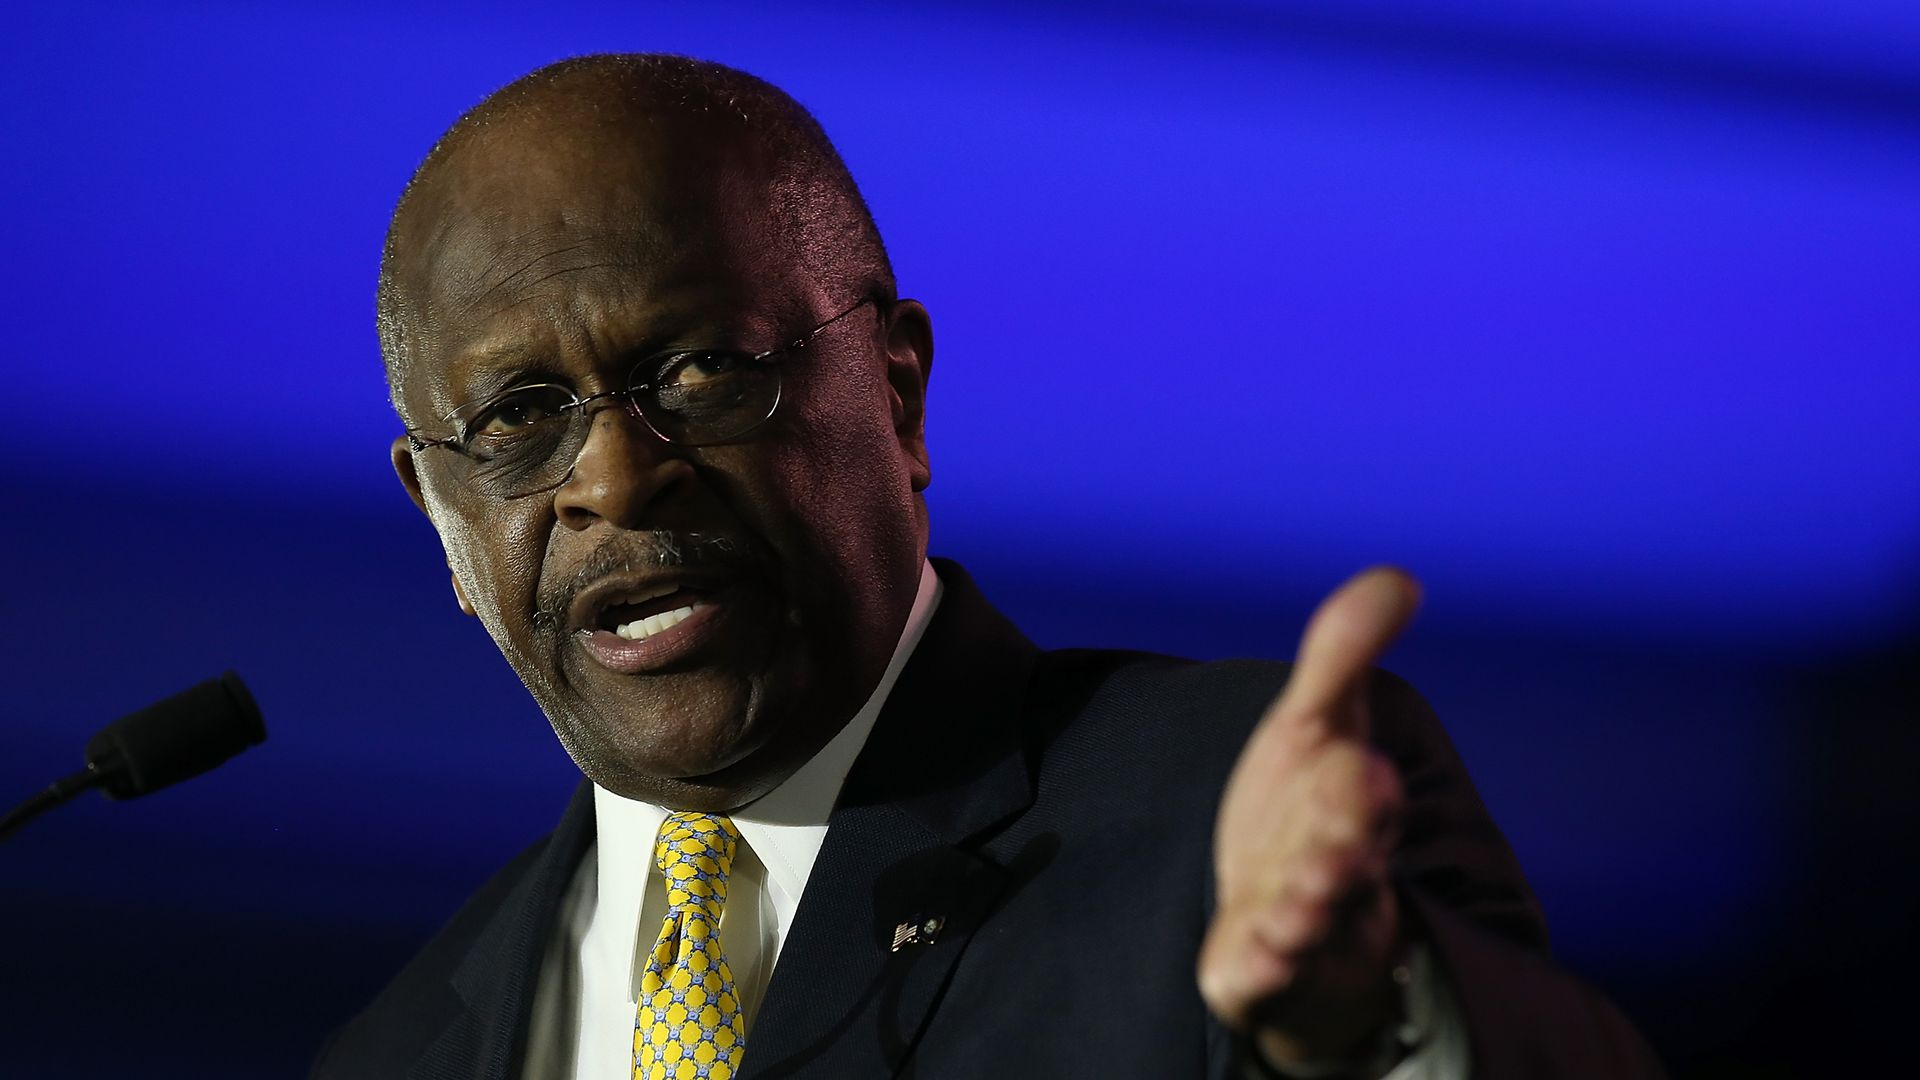 Herman Cain giving a speech